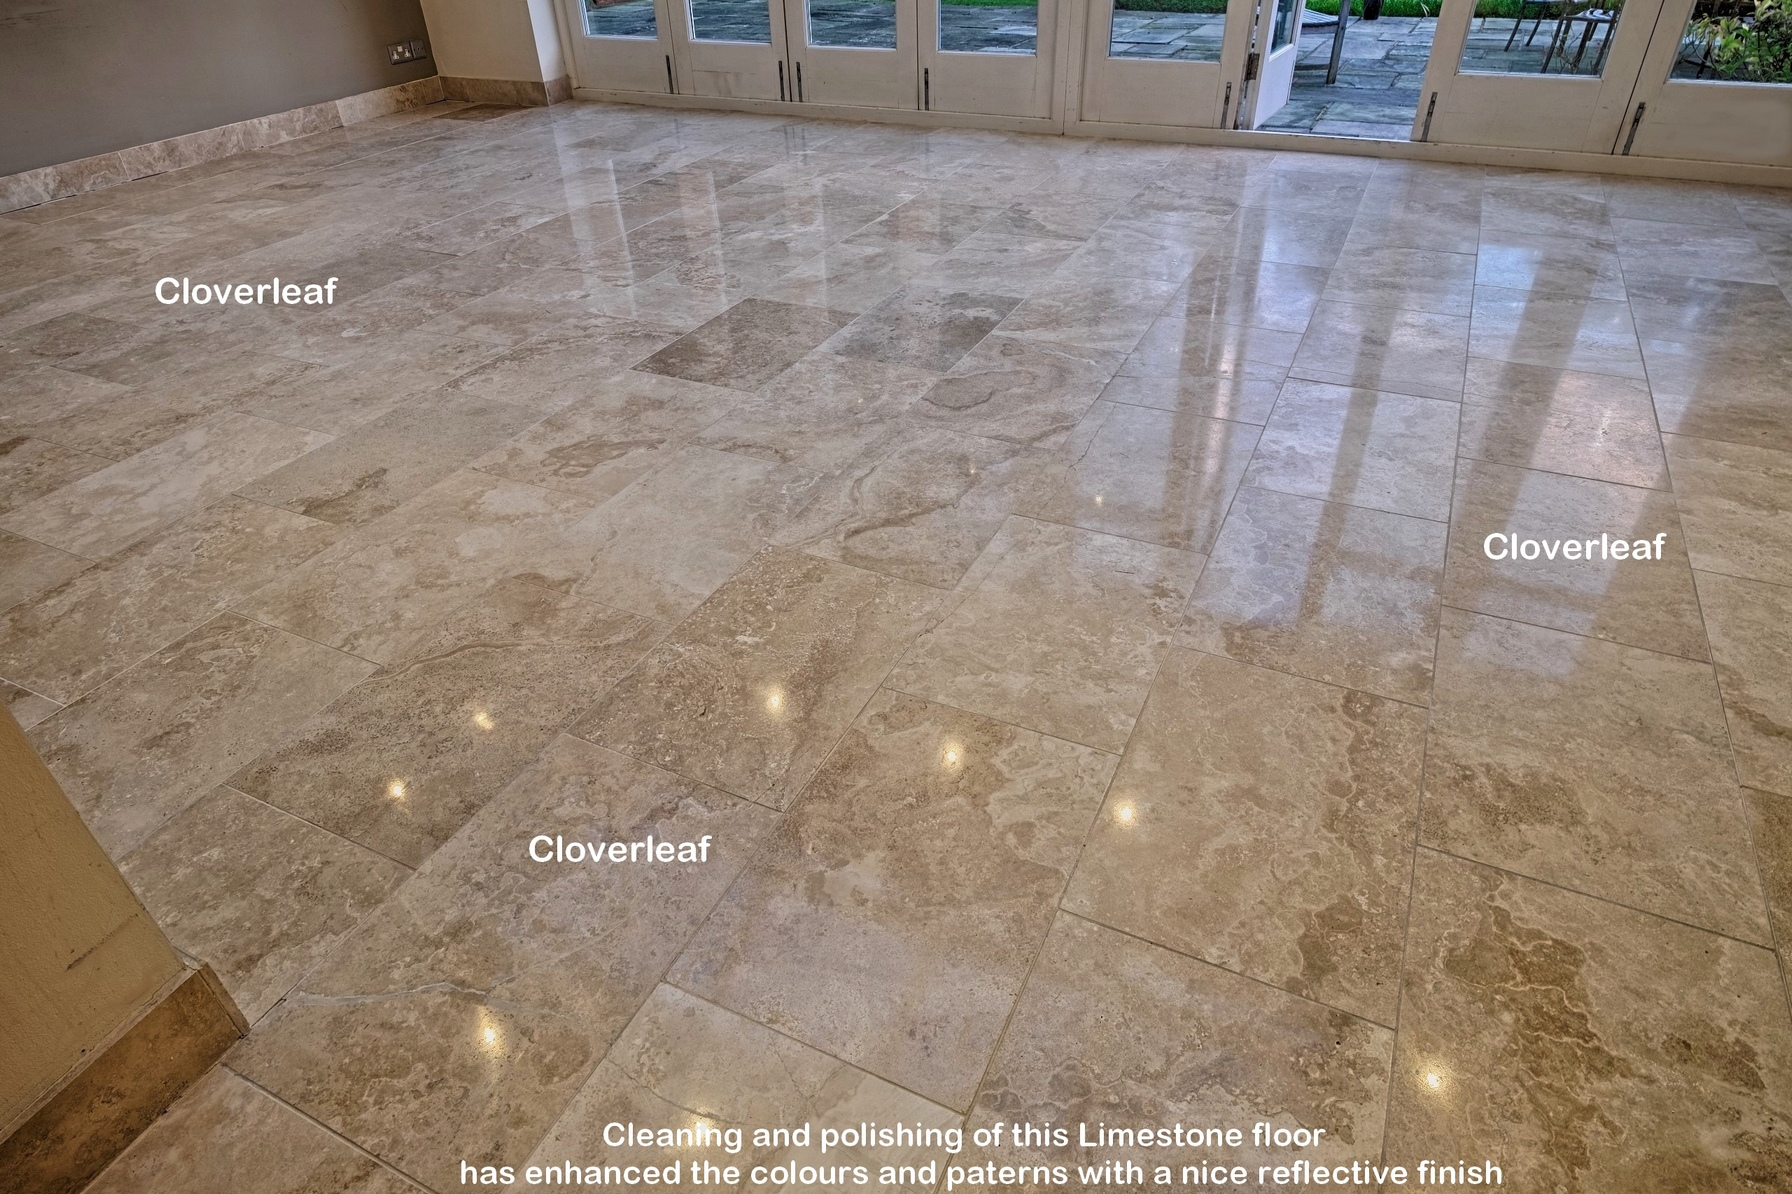 Limestone floor polishing Cheshire